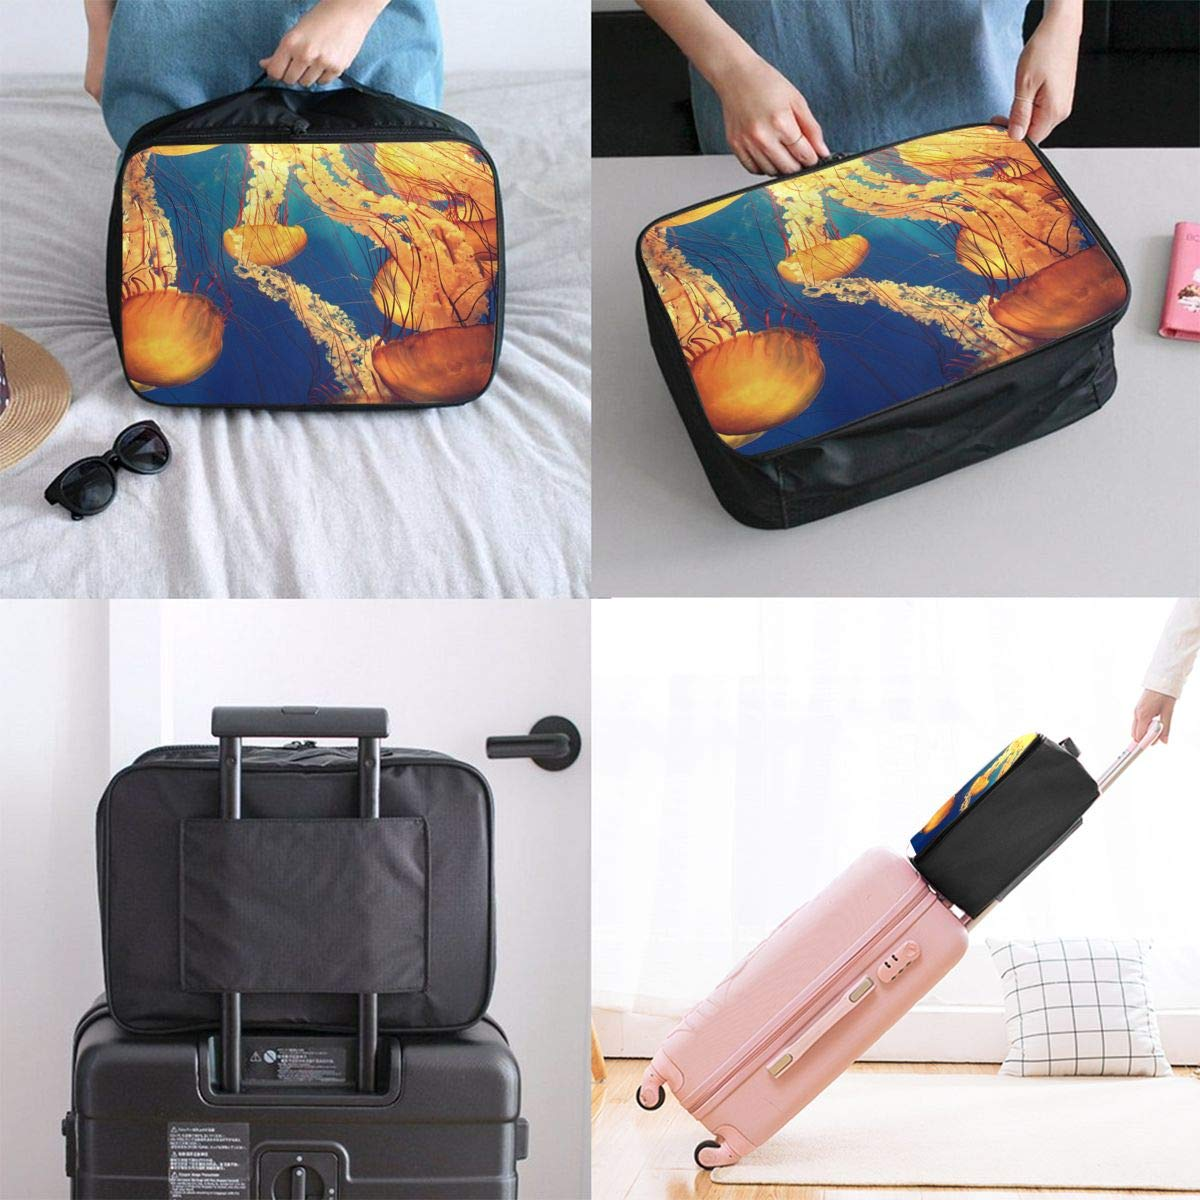 Travel Luggage Duffle Bag Lightweight Portable Handbag Golden Jellyfish Pattern Large Capacity Waterproof Foldable Storage Tote